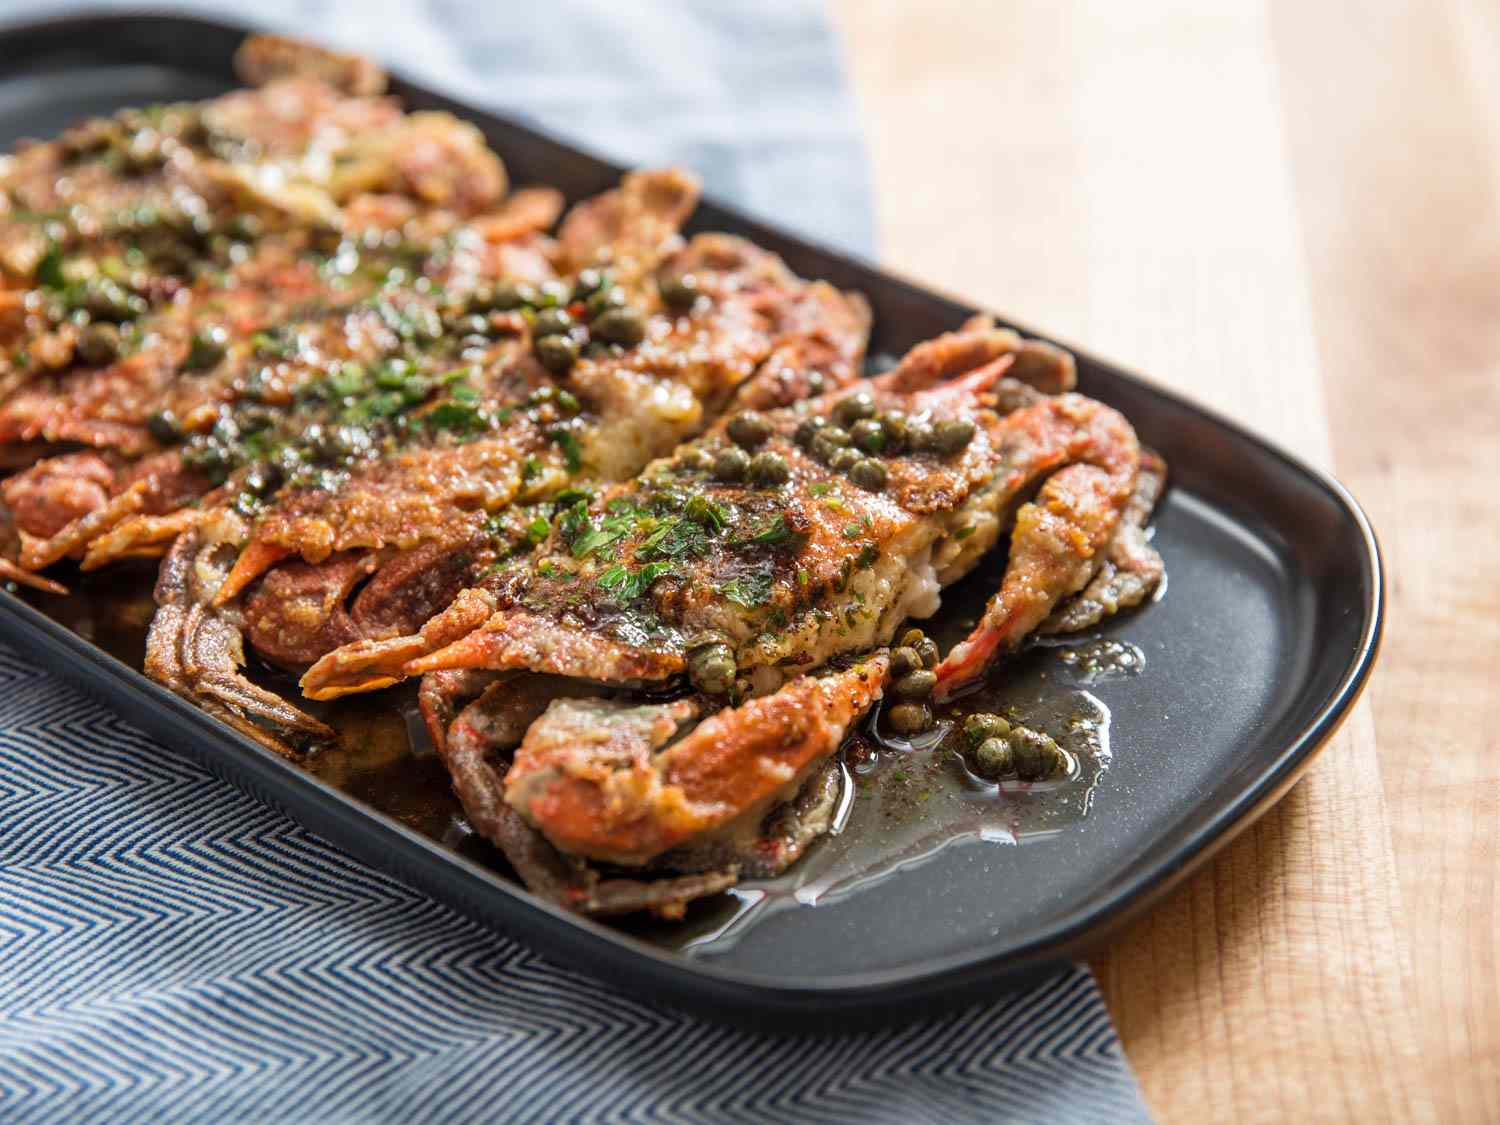 20190426-soft-shell-crab-butter-capers-vicky-wasik-16